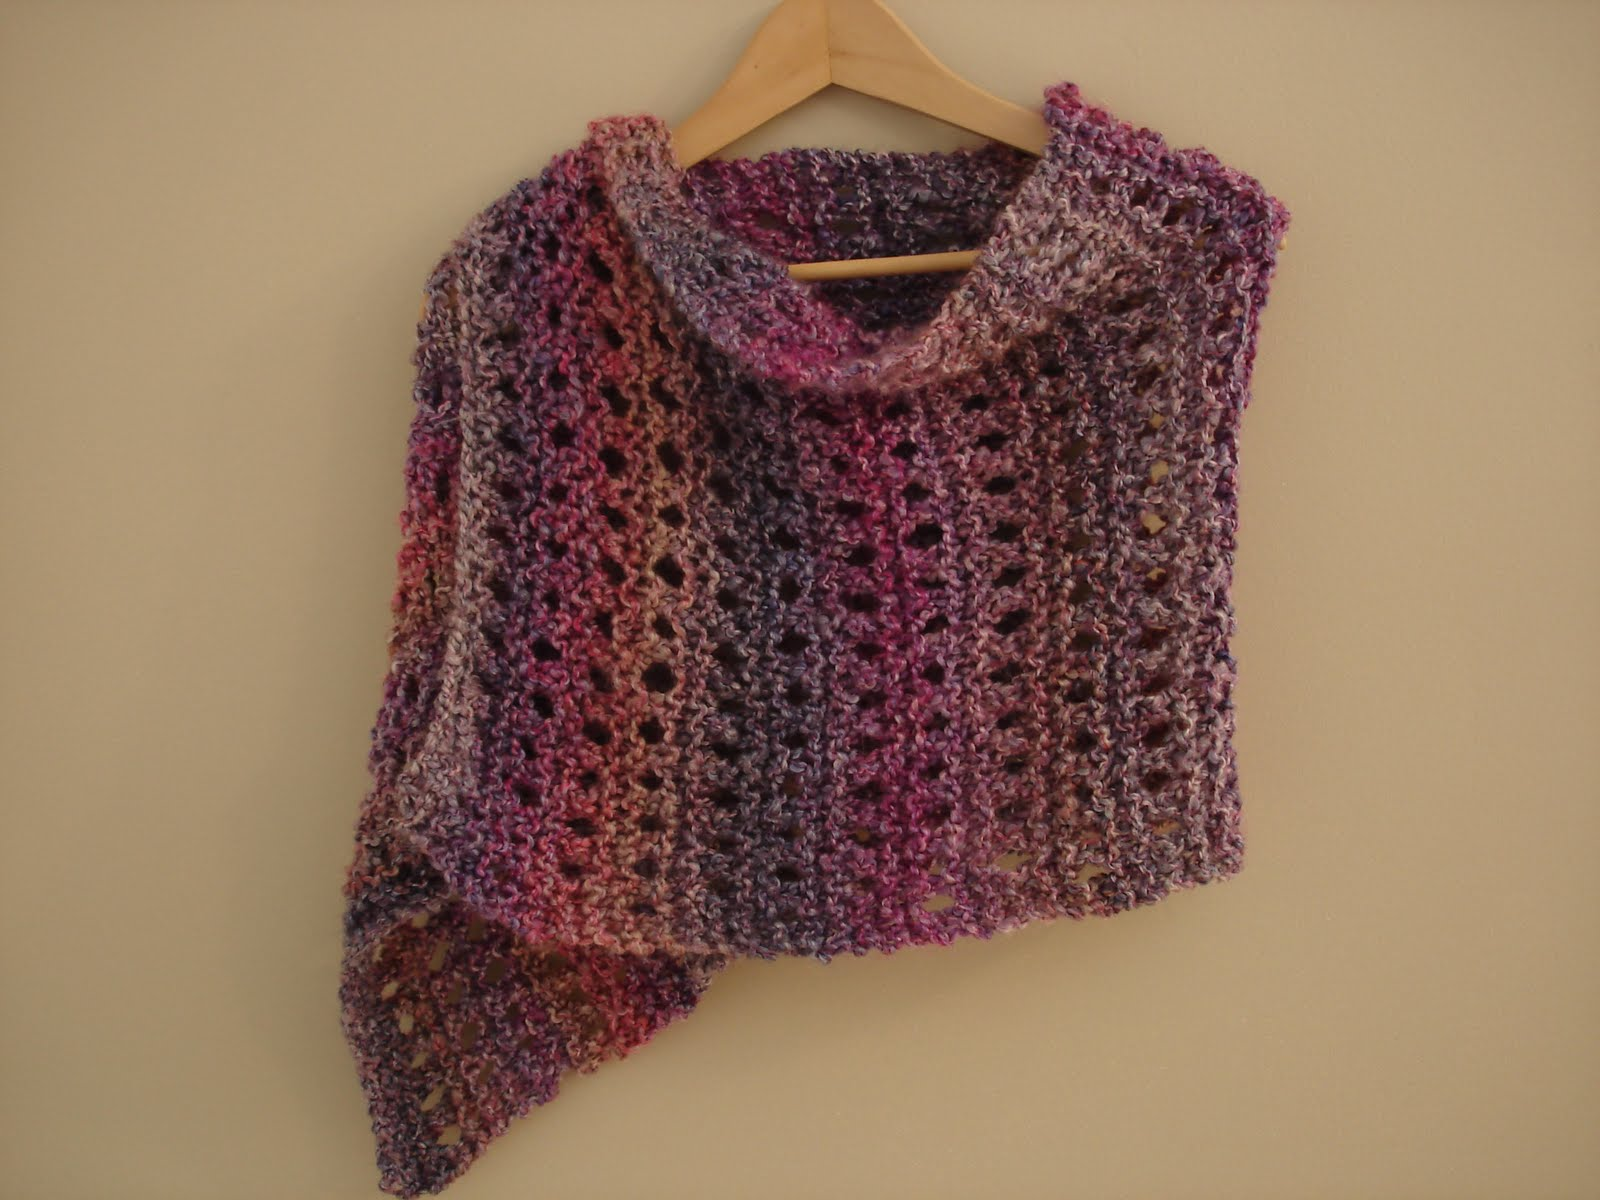 Free Knitting Pattern For A Baby Shawl : Fiber Flux: Free Knitting Pattern...A Peaceful Shawl!